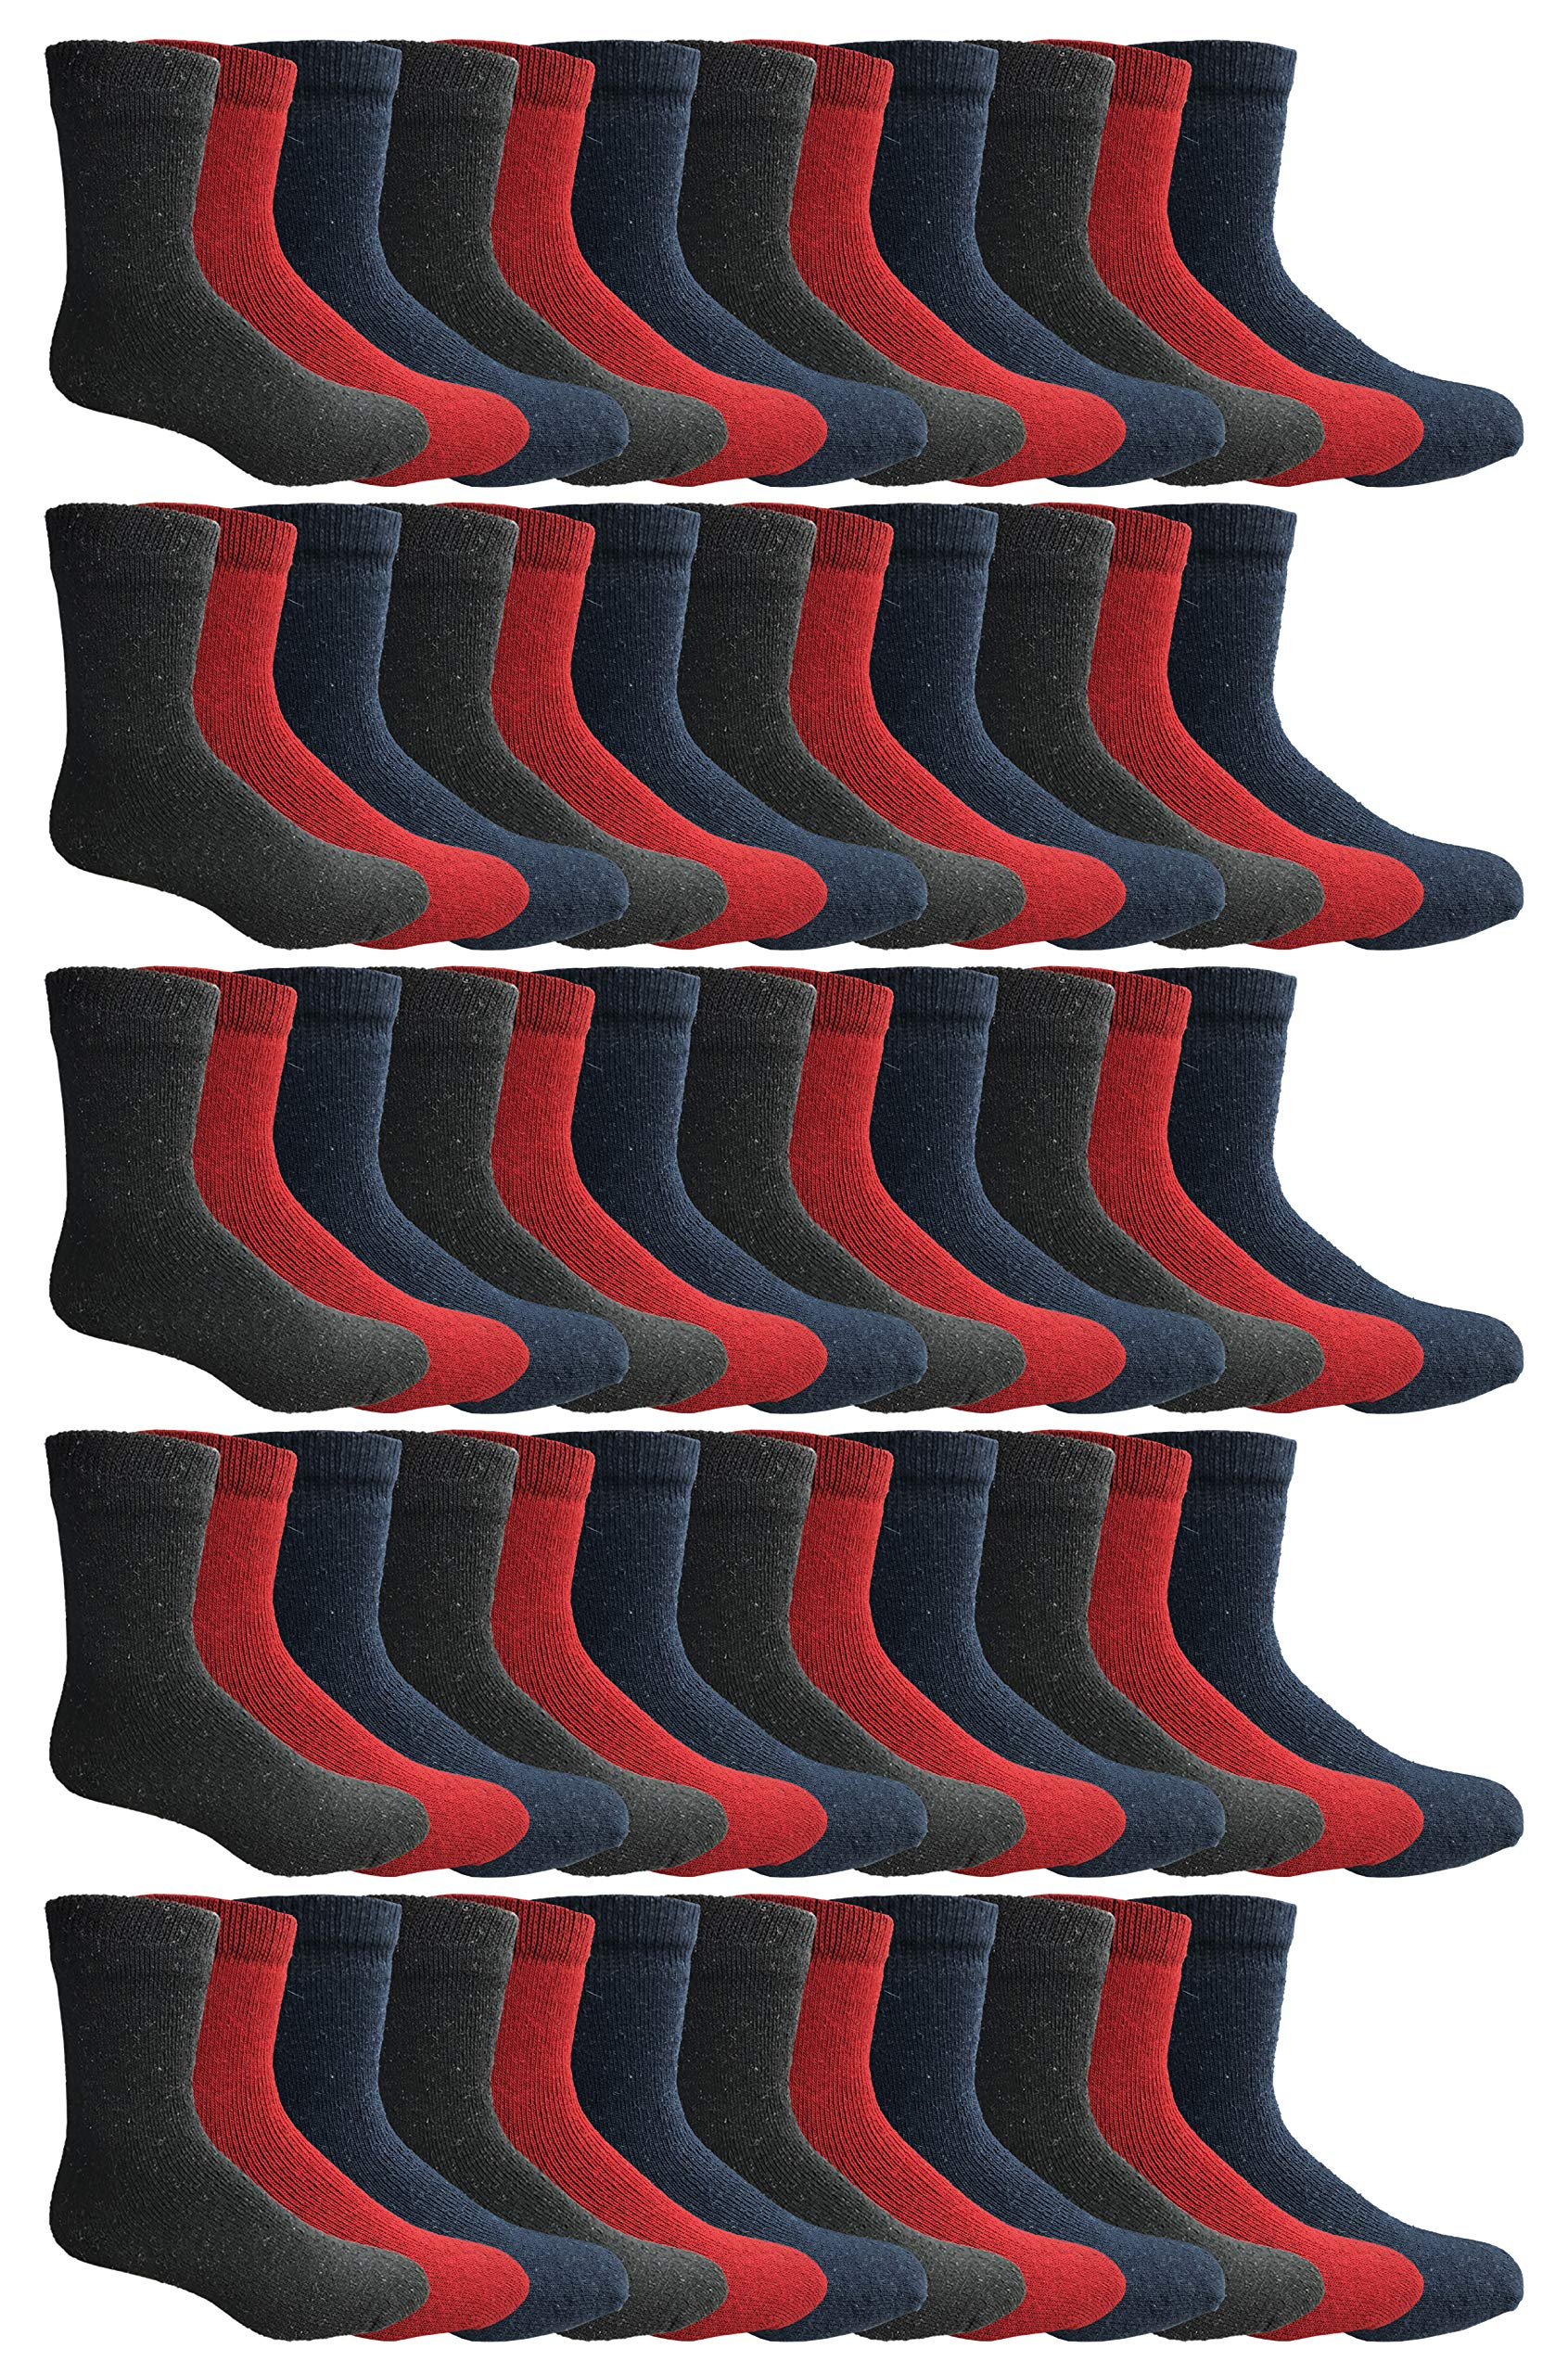 180 Pairs Case of Thermal Socks, Bulk Pack Thick Warm Winter Boot Sock, Extreme Weather, by Excell (60 Pairs Assorted, 9-11 (Womens)) by Wholesale Sock Deals